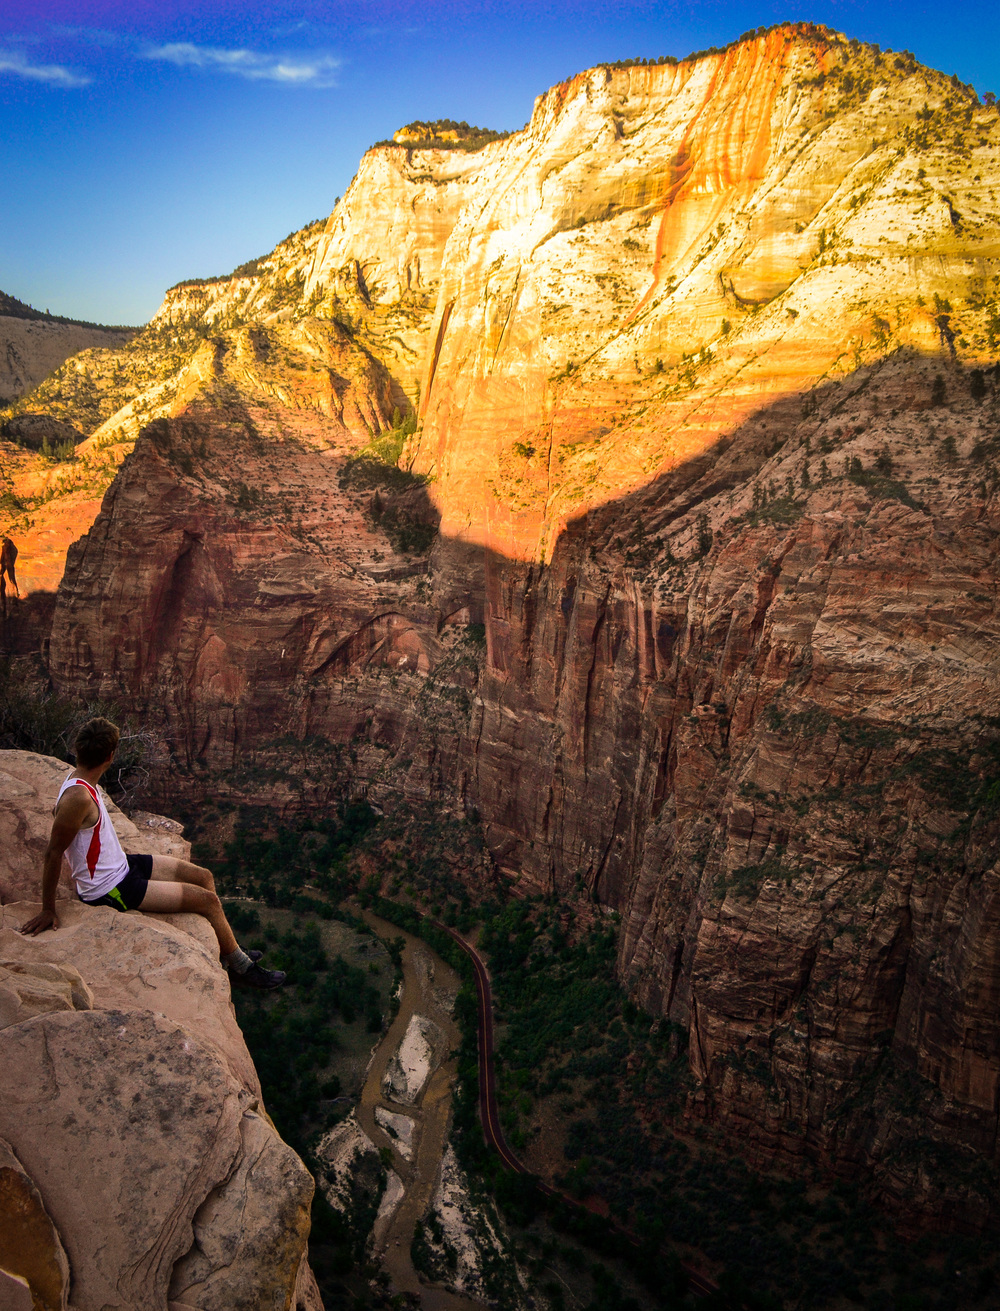 Overlooking the mighty Zion Canyon in Utah